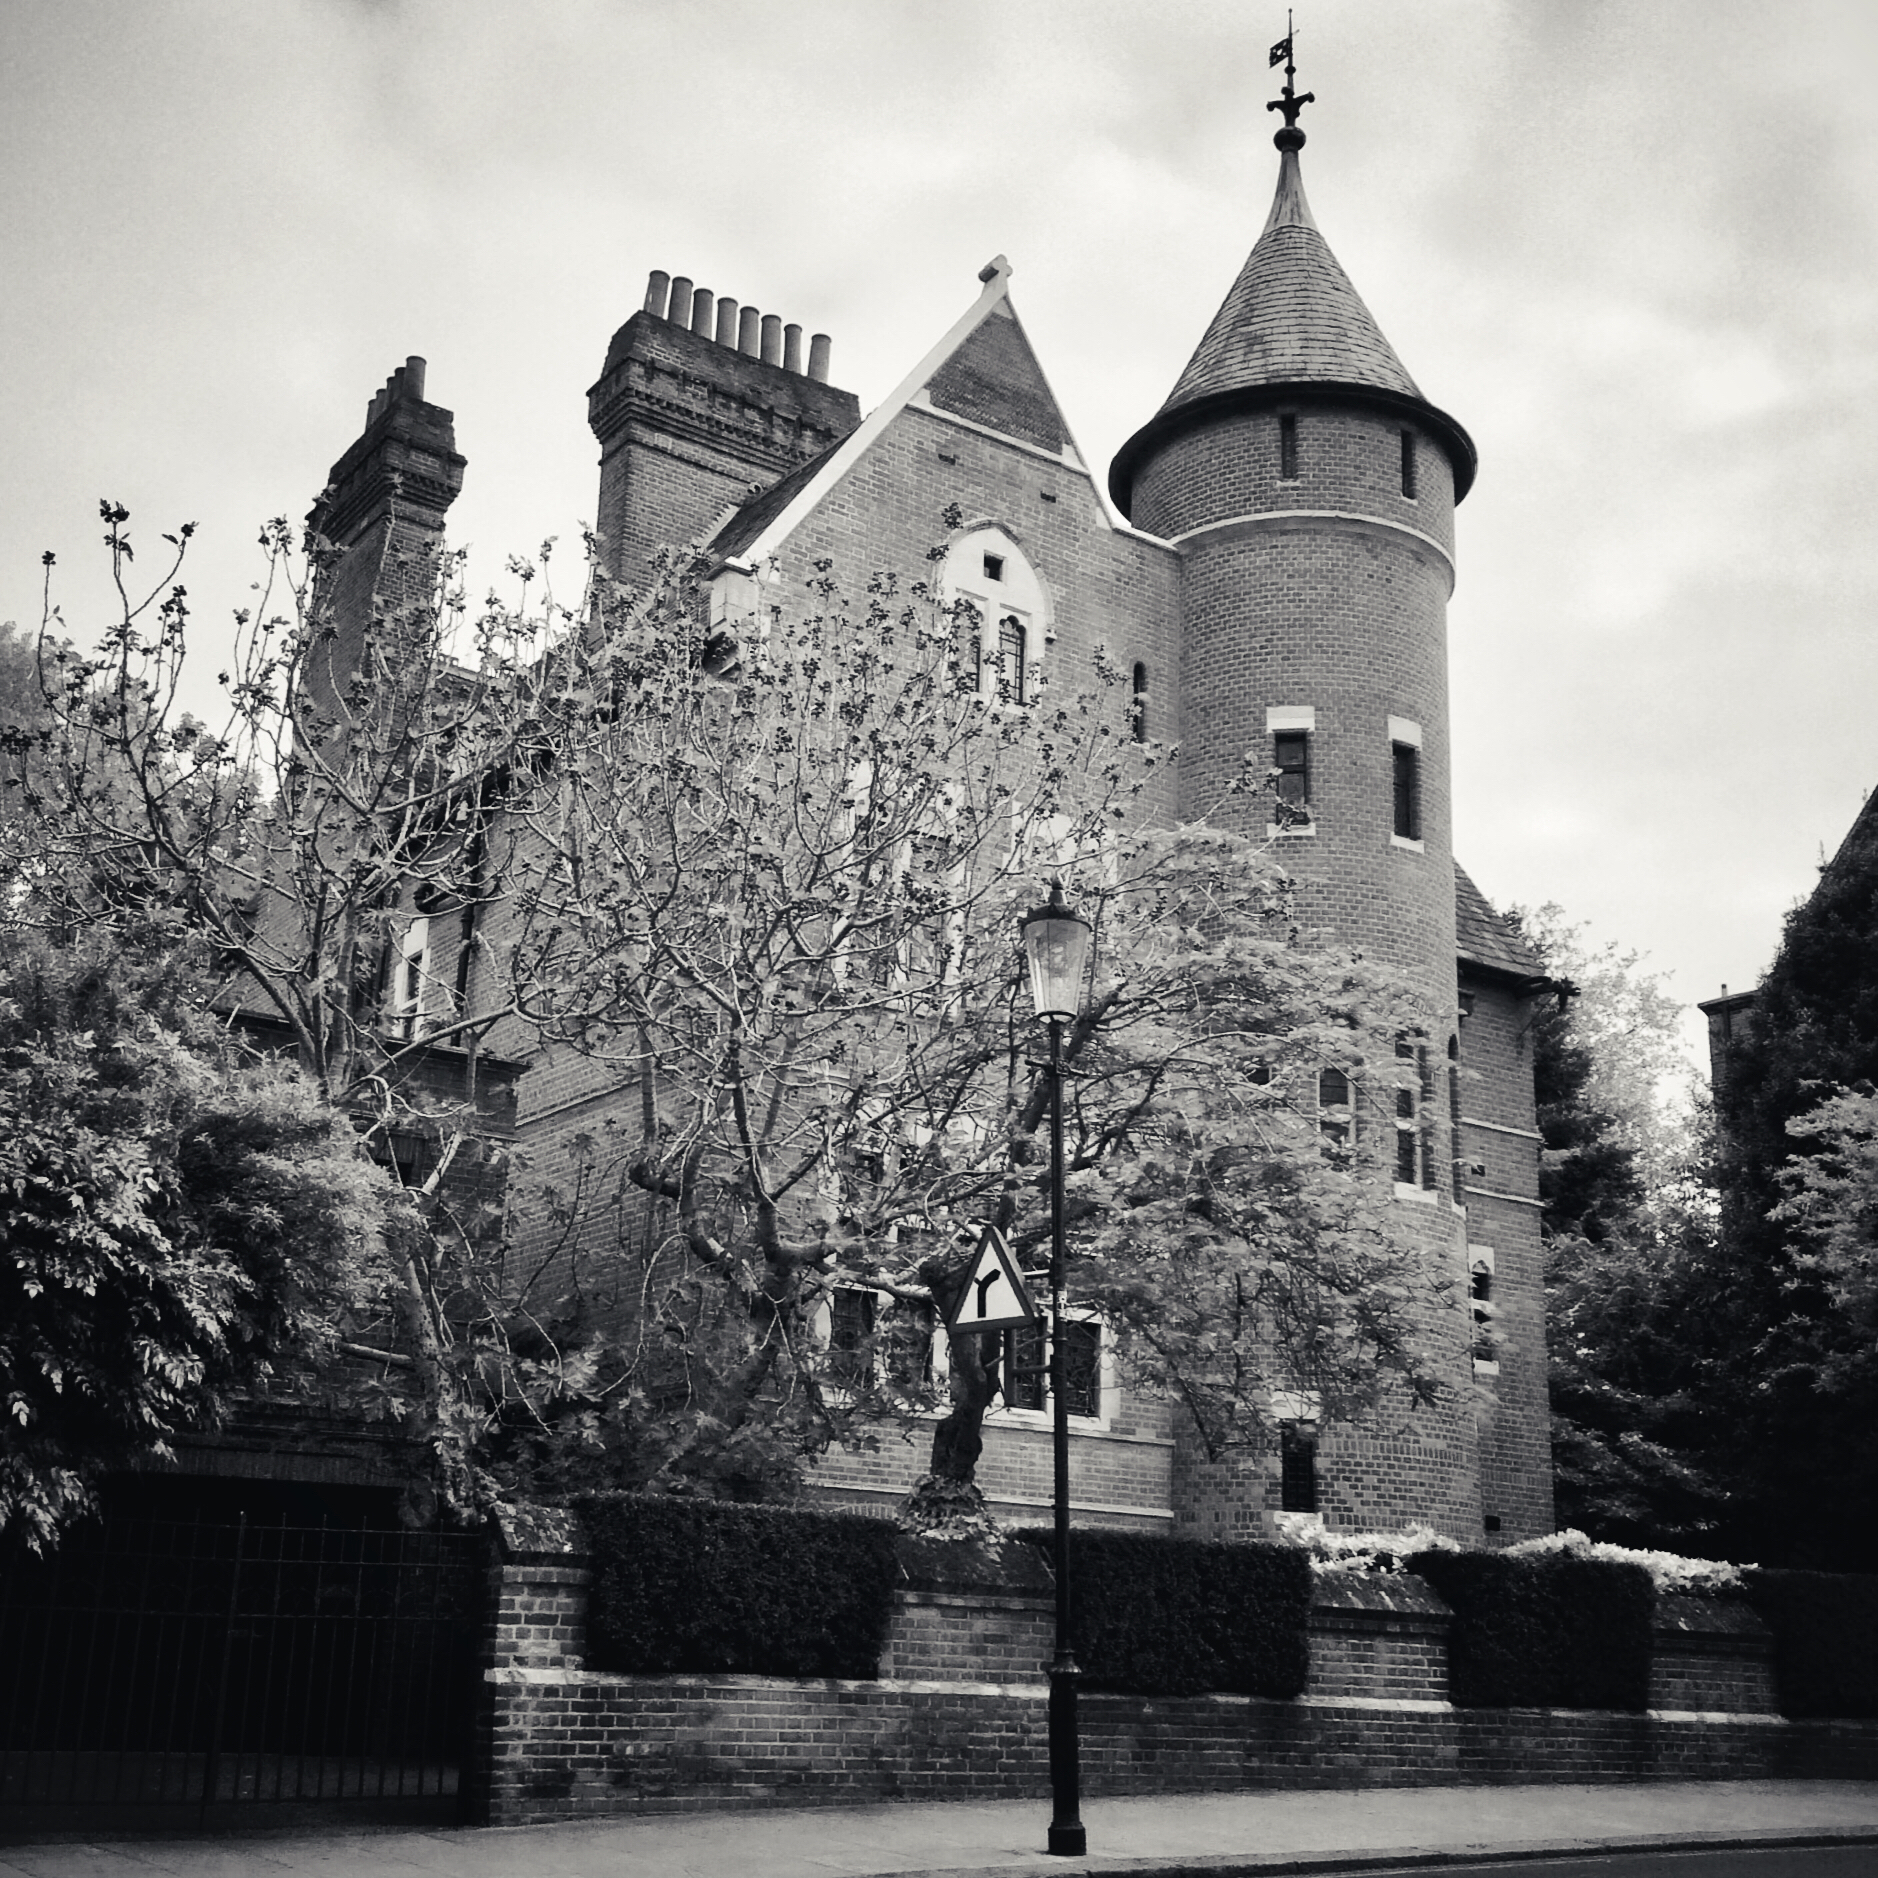 Jimmy Page's London home - The Tower House